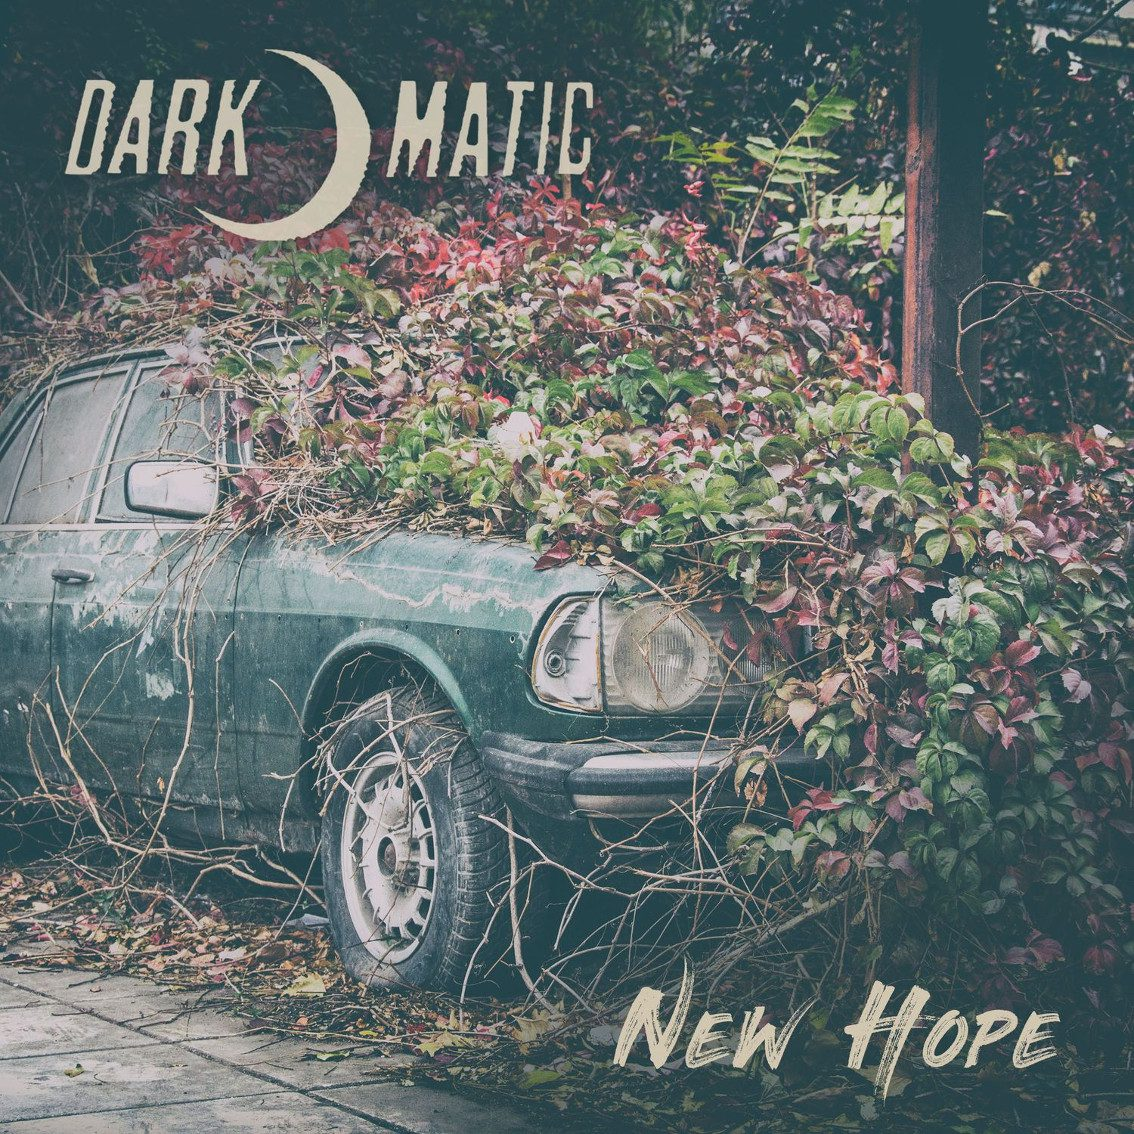 Dark-o-matic debutes with 'New Hope' album - complete preview